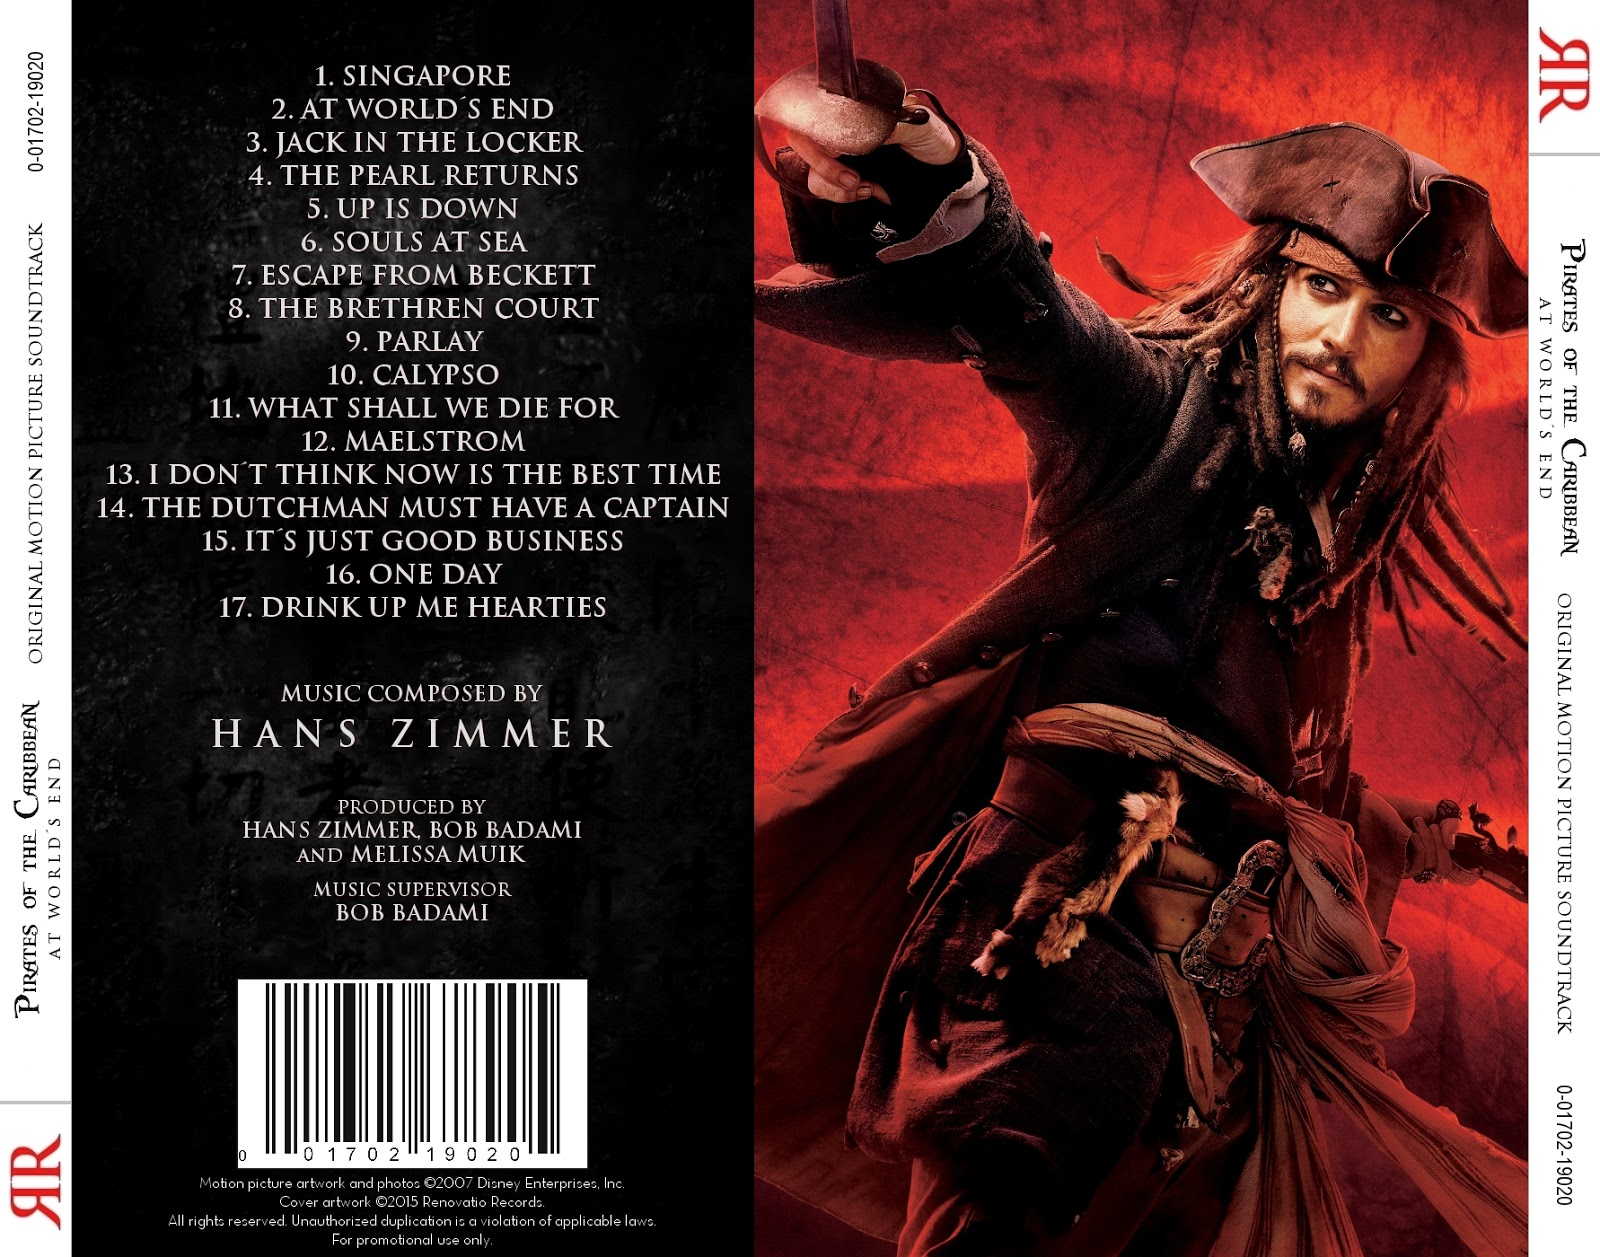 Pirates of the caribbean 5 theme song download 320kbps